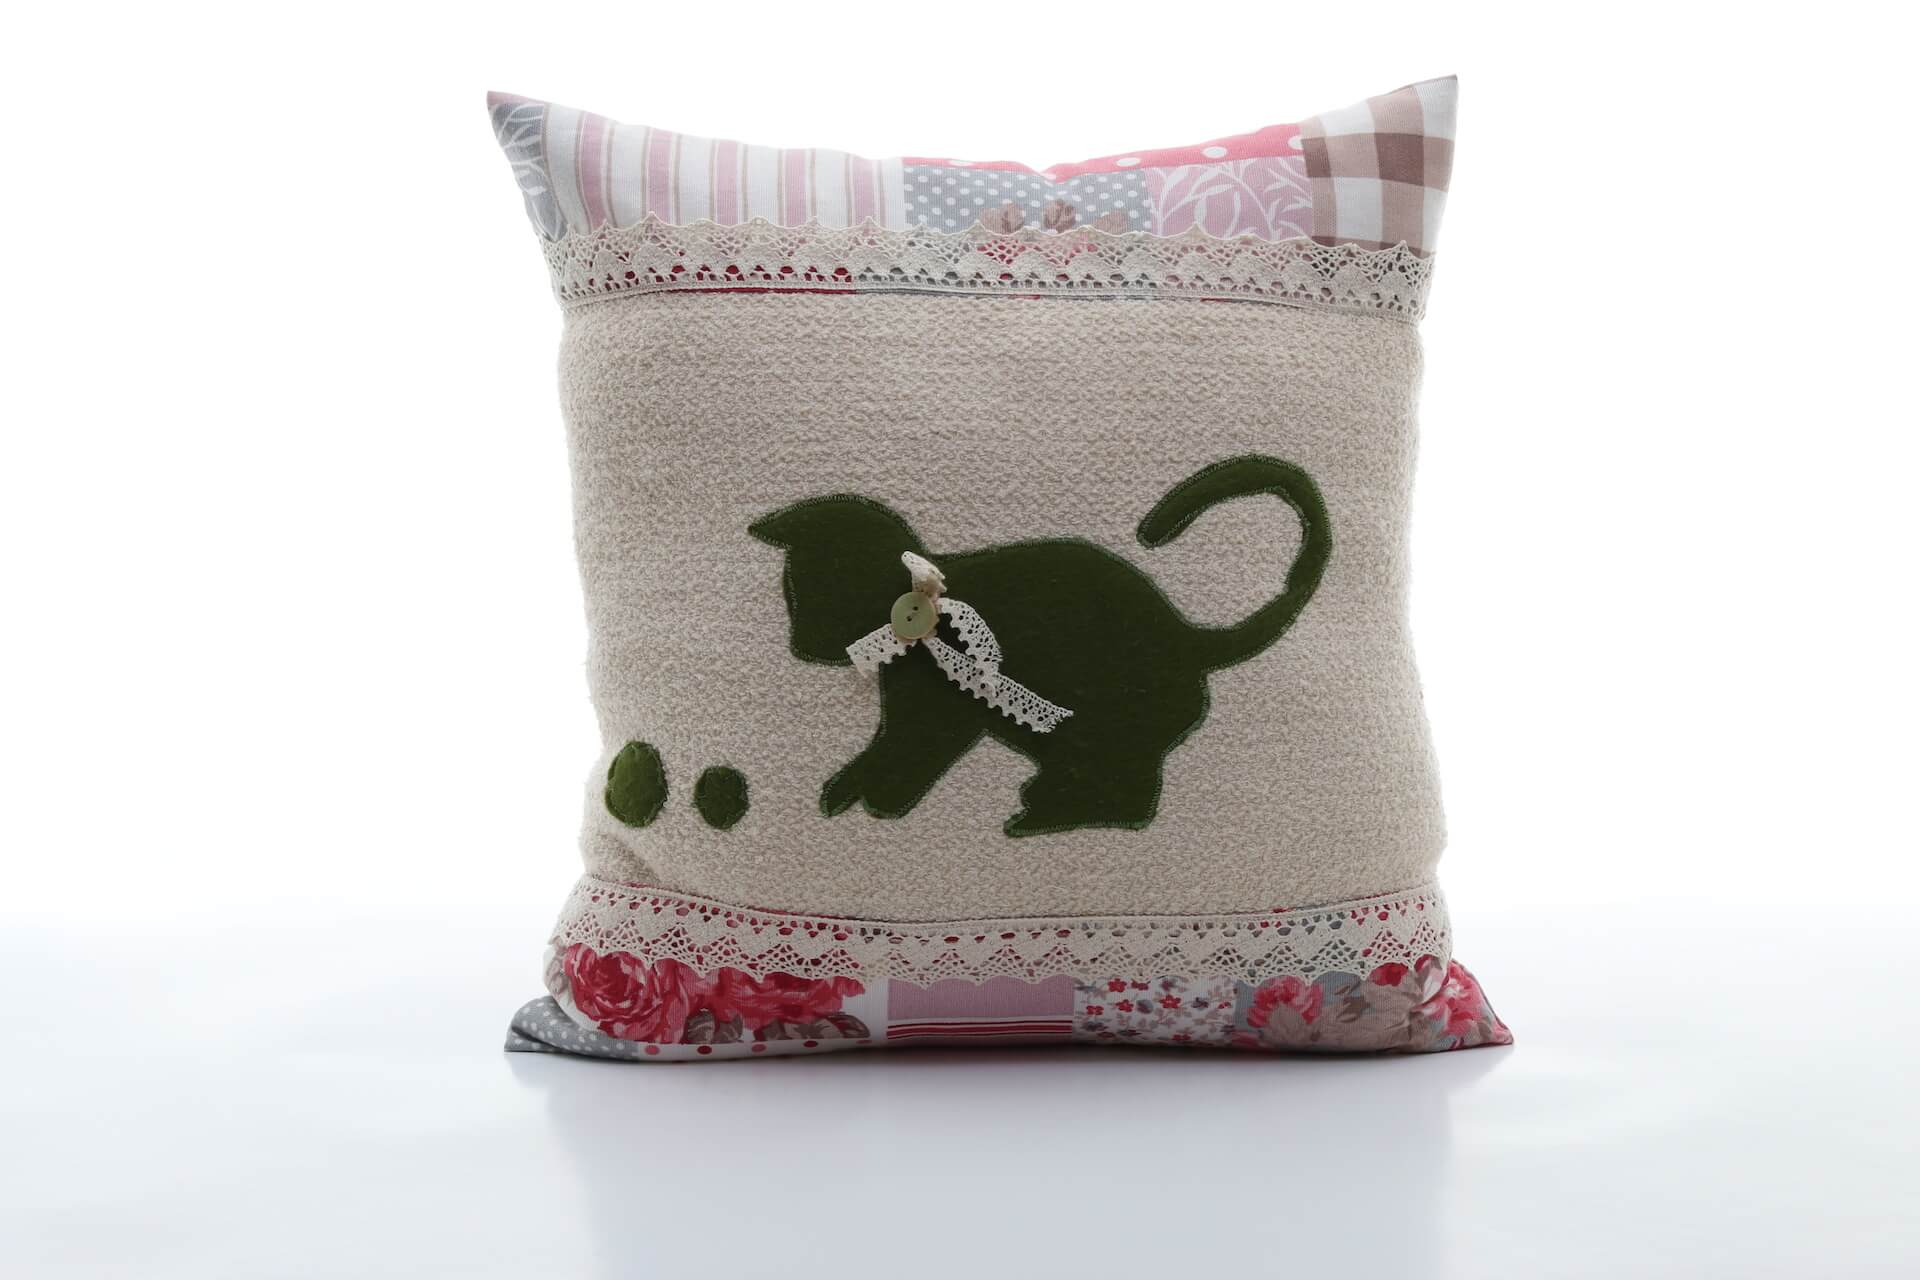 handmade decorative pillow with green cat 40x40 cm bowema